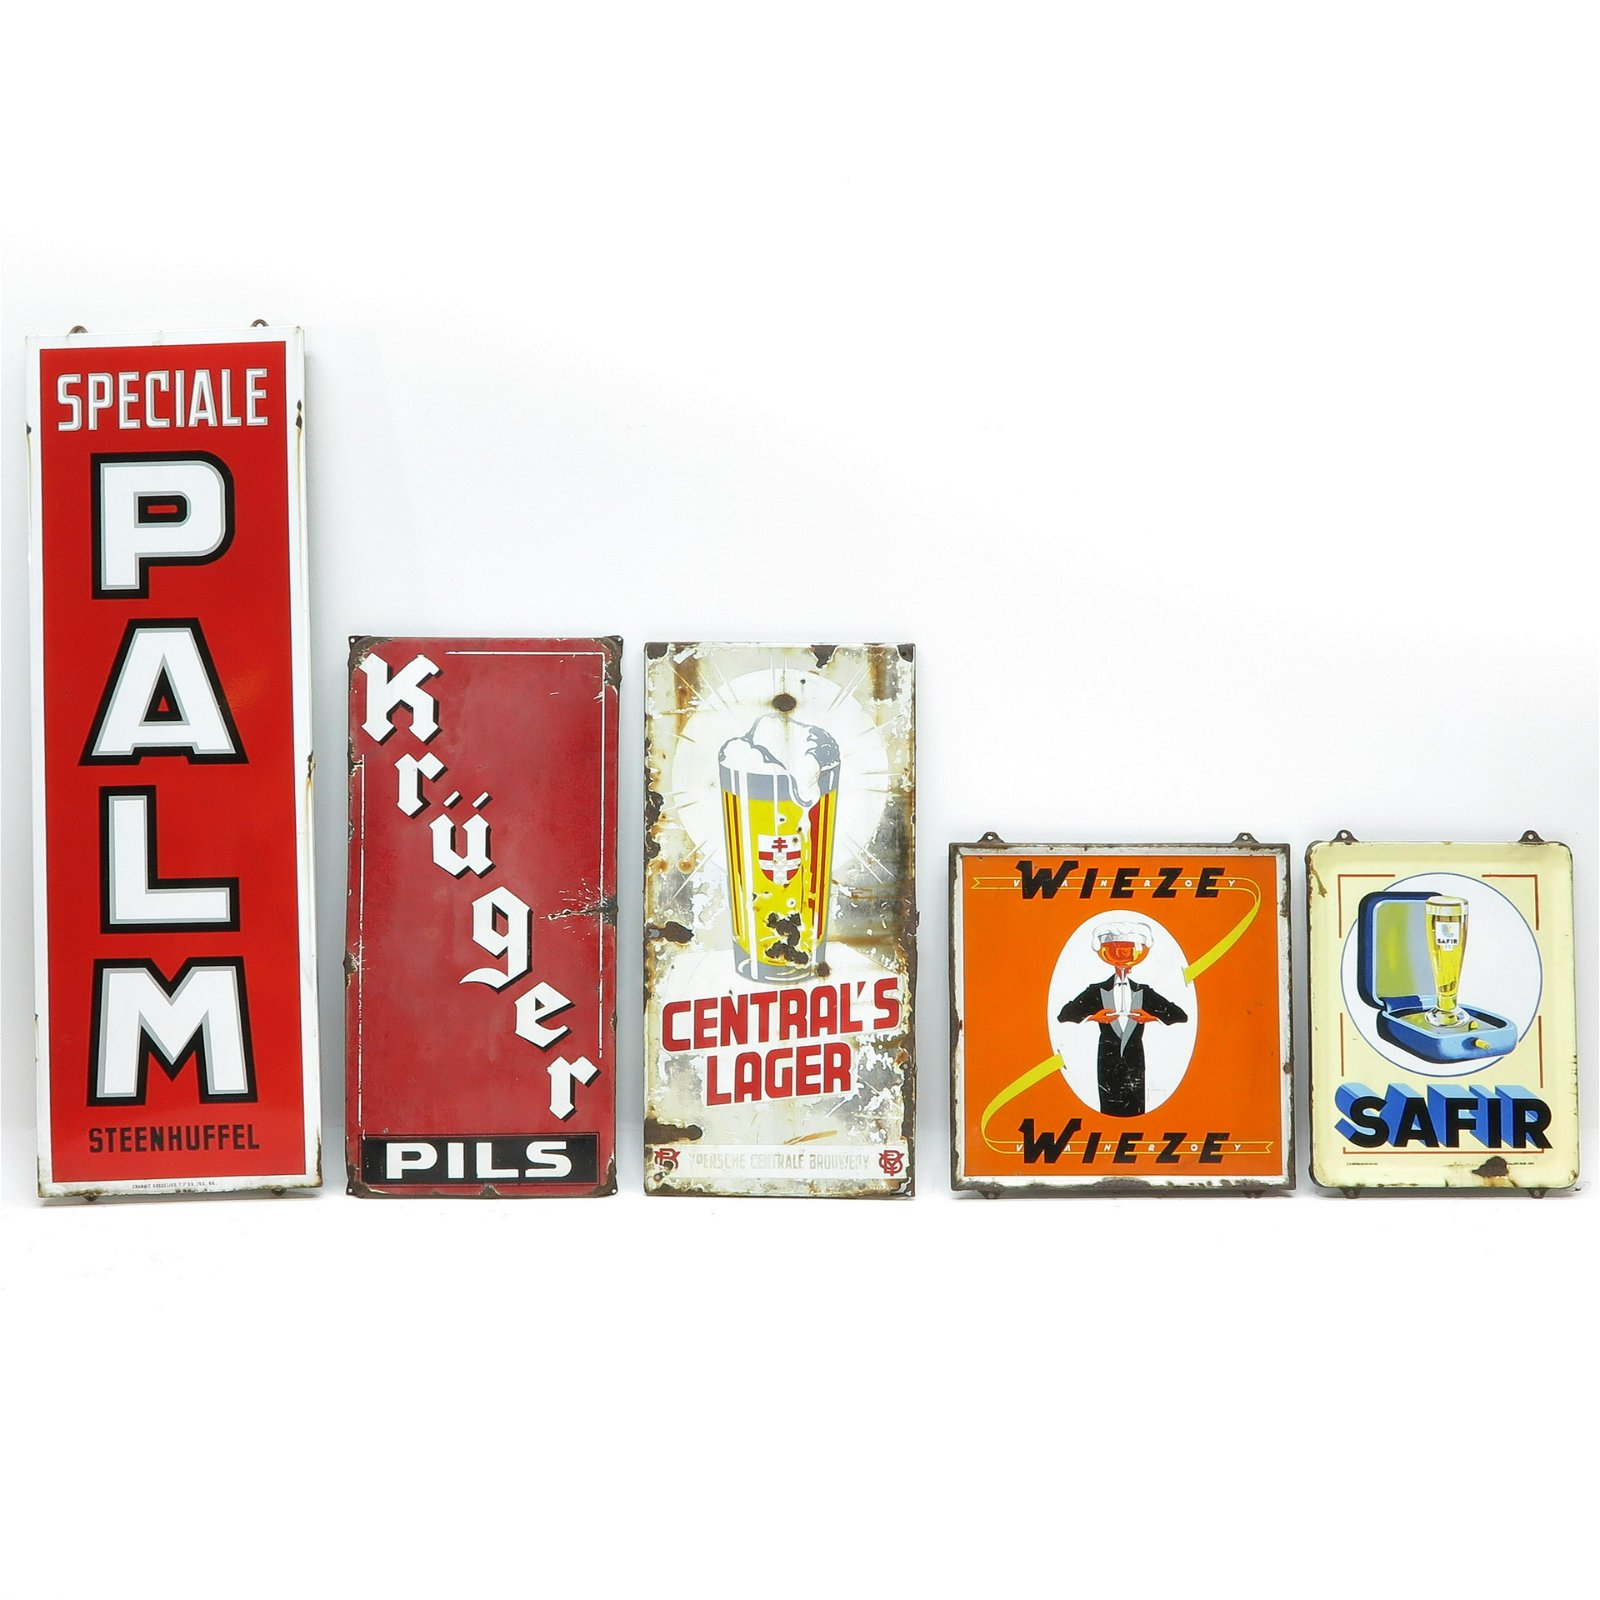 A Collection of Five Vintage Advertising Signs